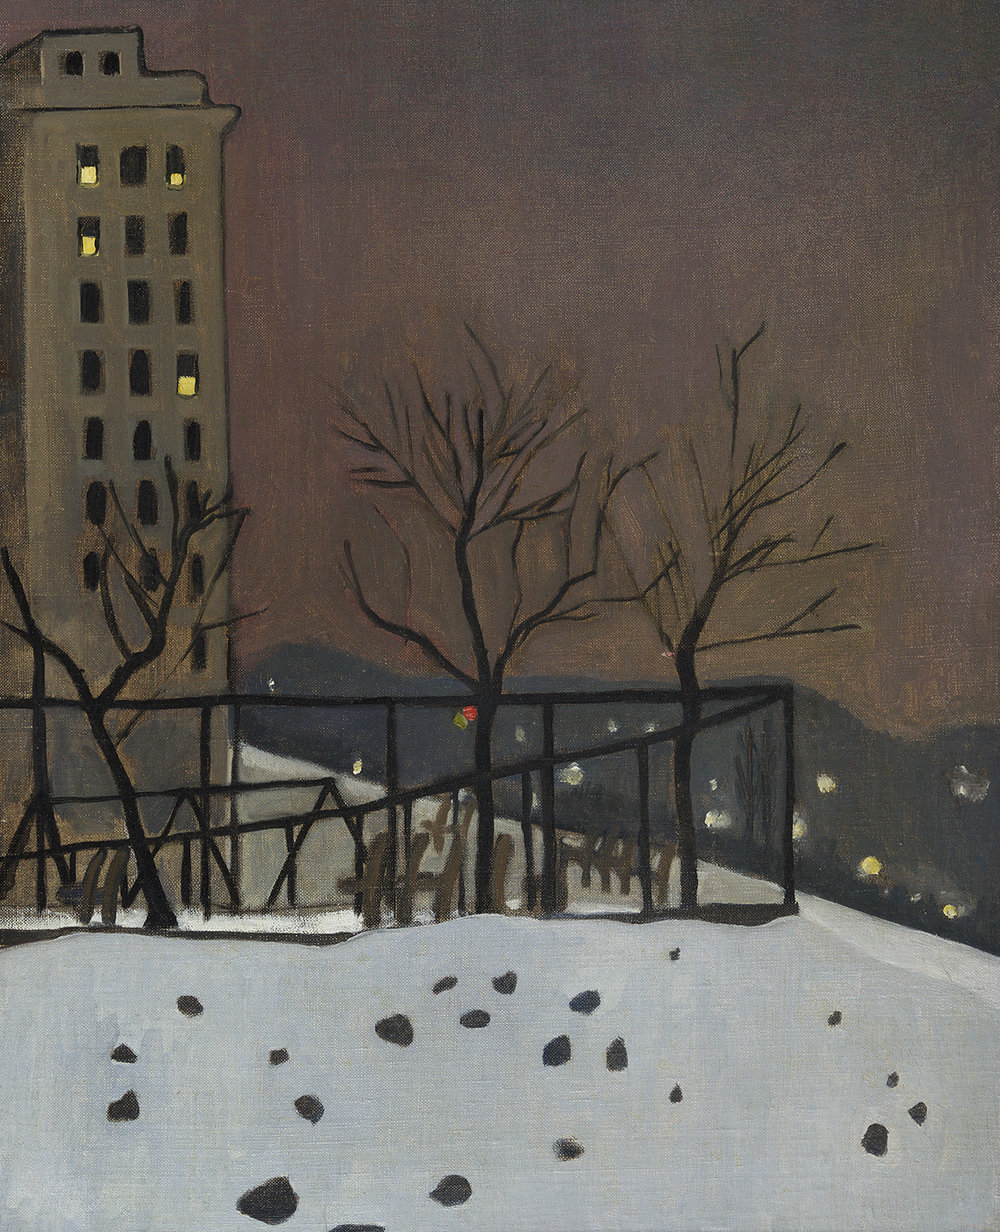 Painting of bare trees in snow, hills in background, apartment building on left.